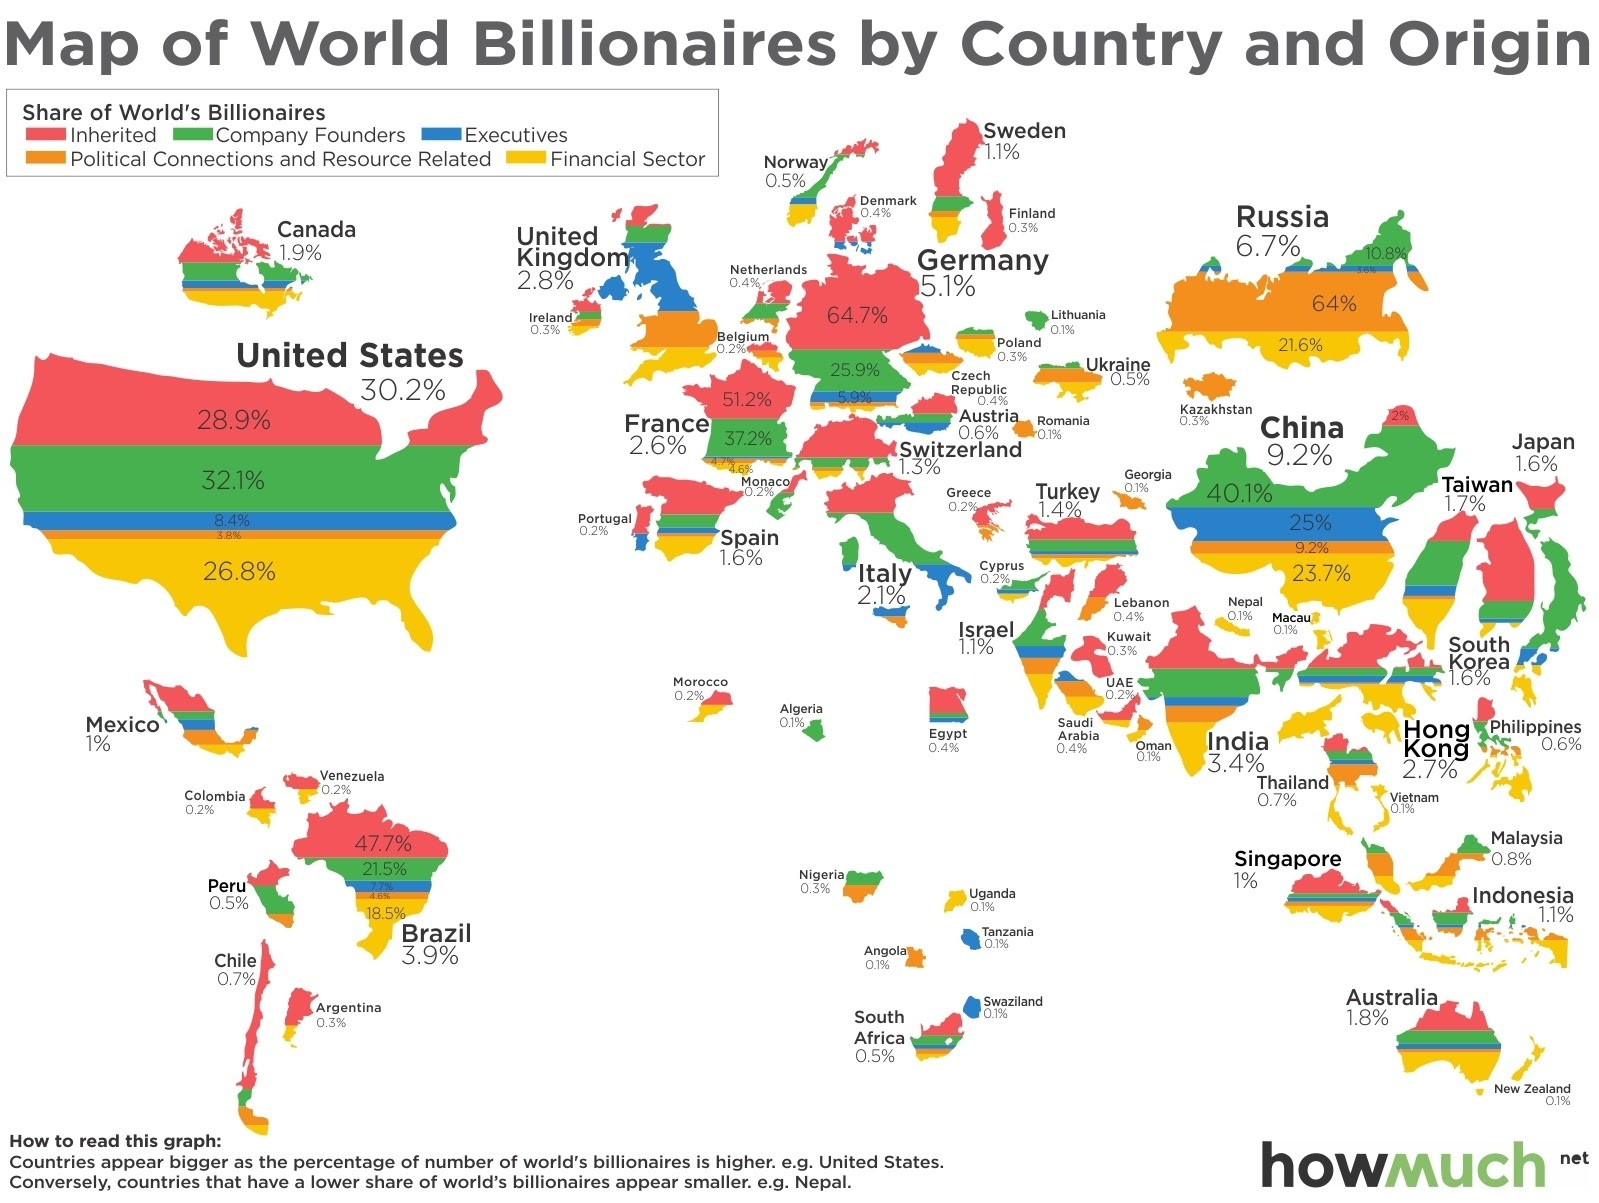 Map of world billonaires by country and origin